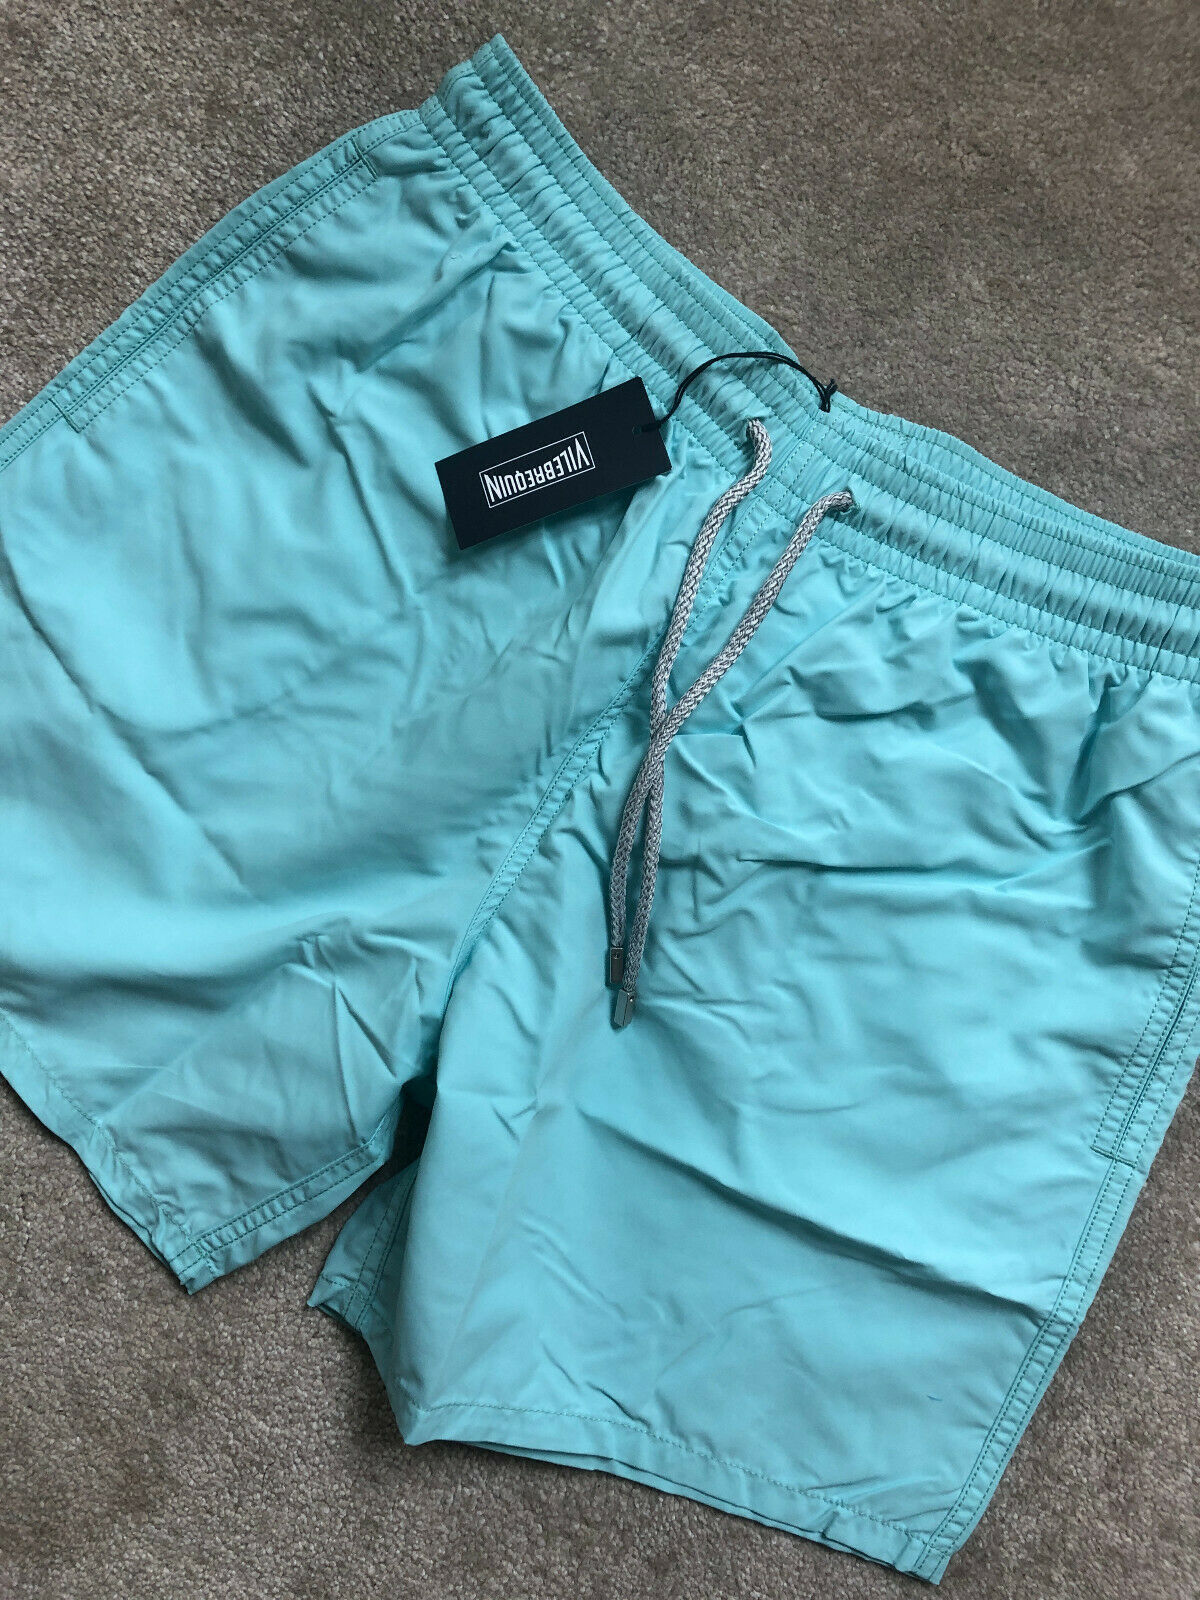 VILEBREQUIN TURQUOISE MOOREA LAGON SWIM SHORTS SWIMWEAR MOOP701P - XL - NEW TAGS